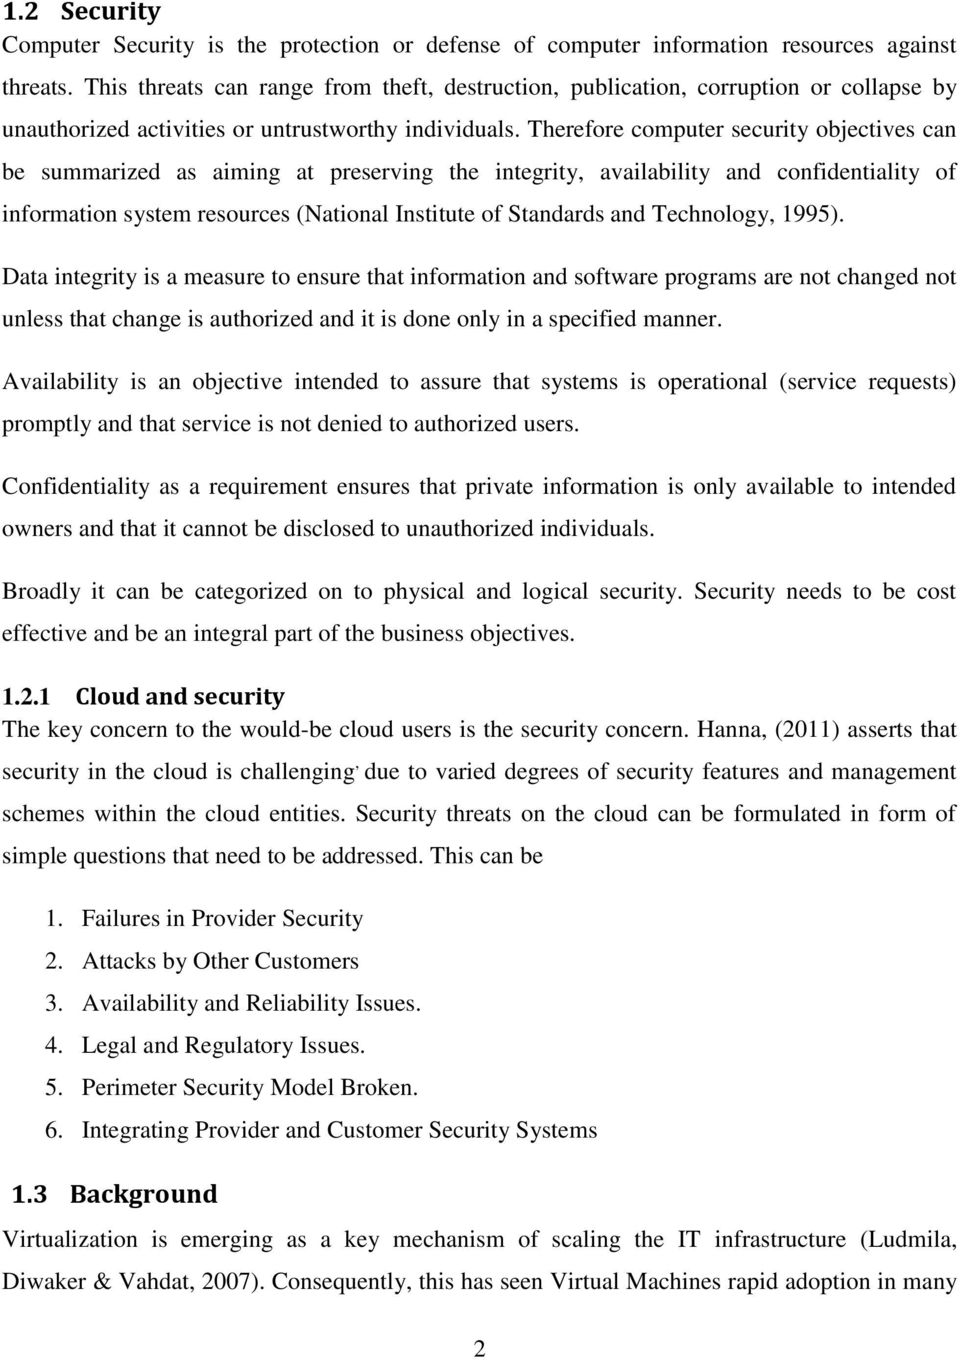 Therefore computer security objectives can be summarized as aiming at preserving the integrity, availability and confidentiality of information system resources (National Institute of Standards and